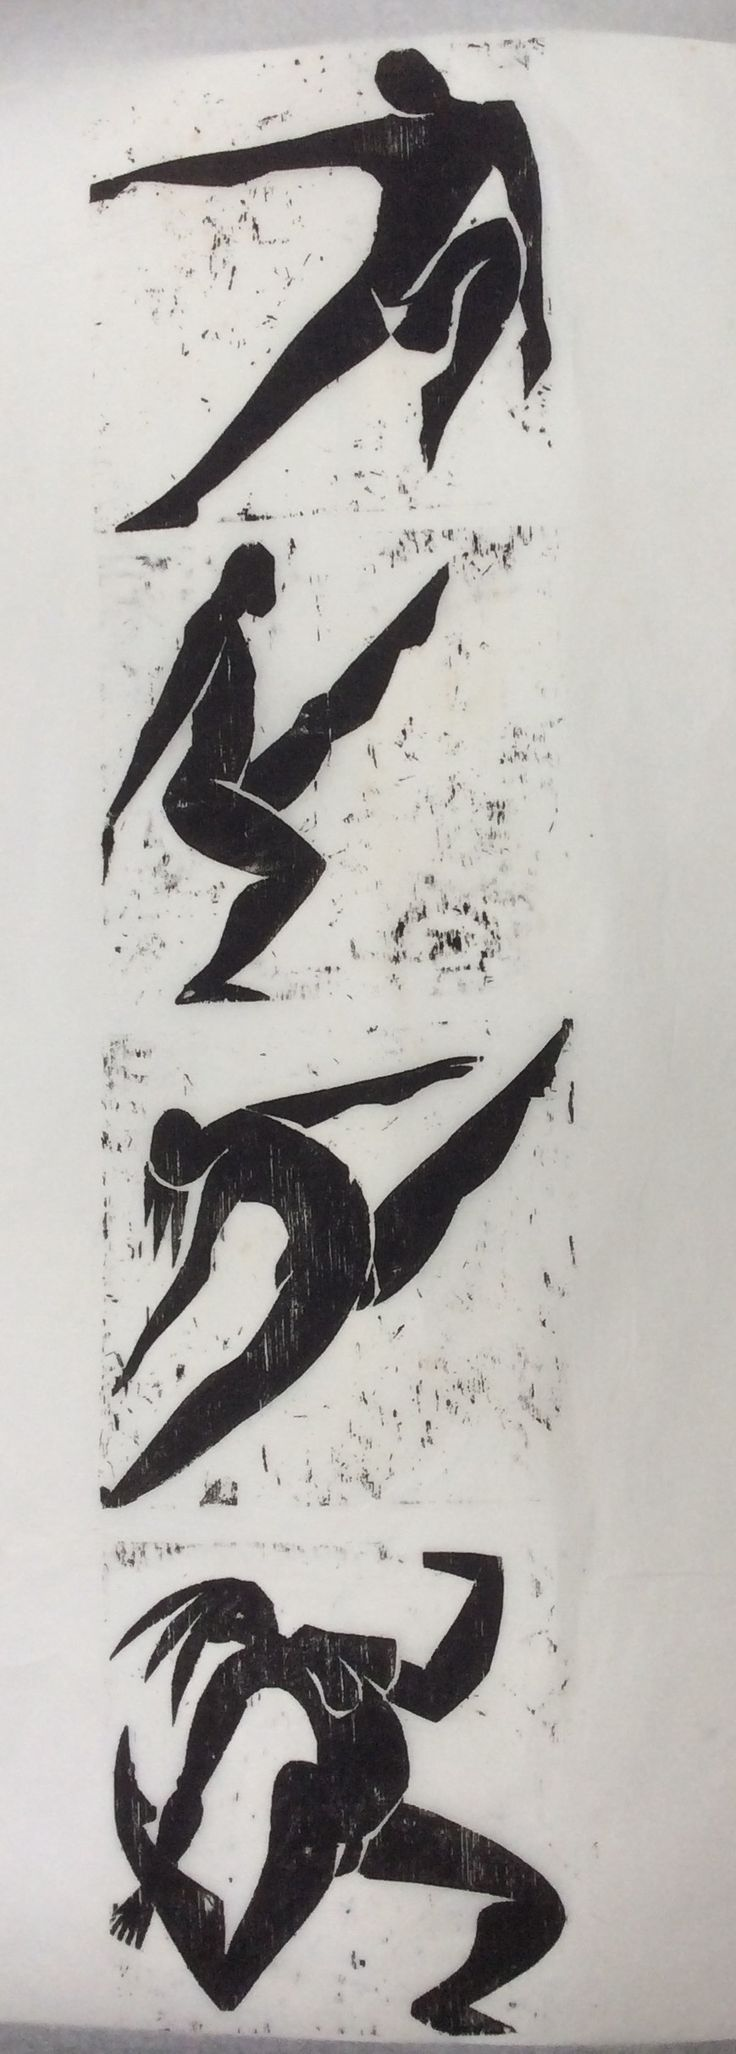 Dancers . Plywood cuts. Louise Baker